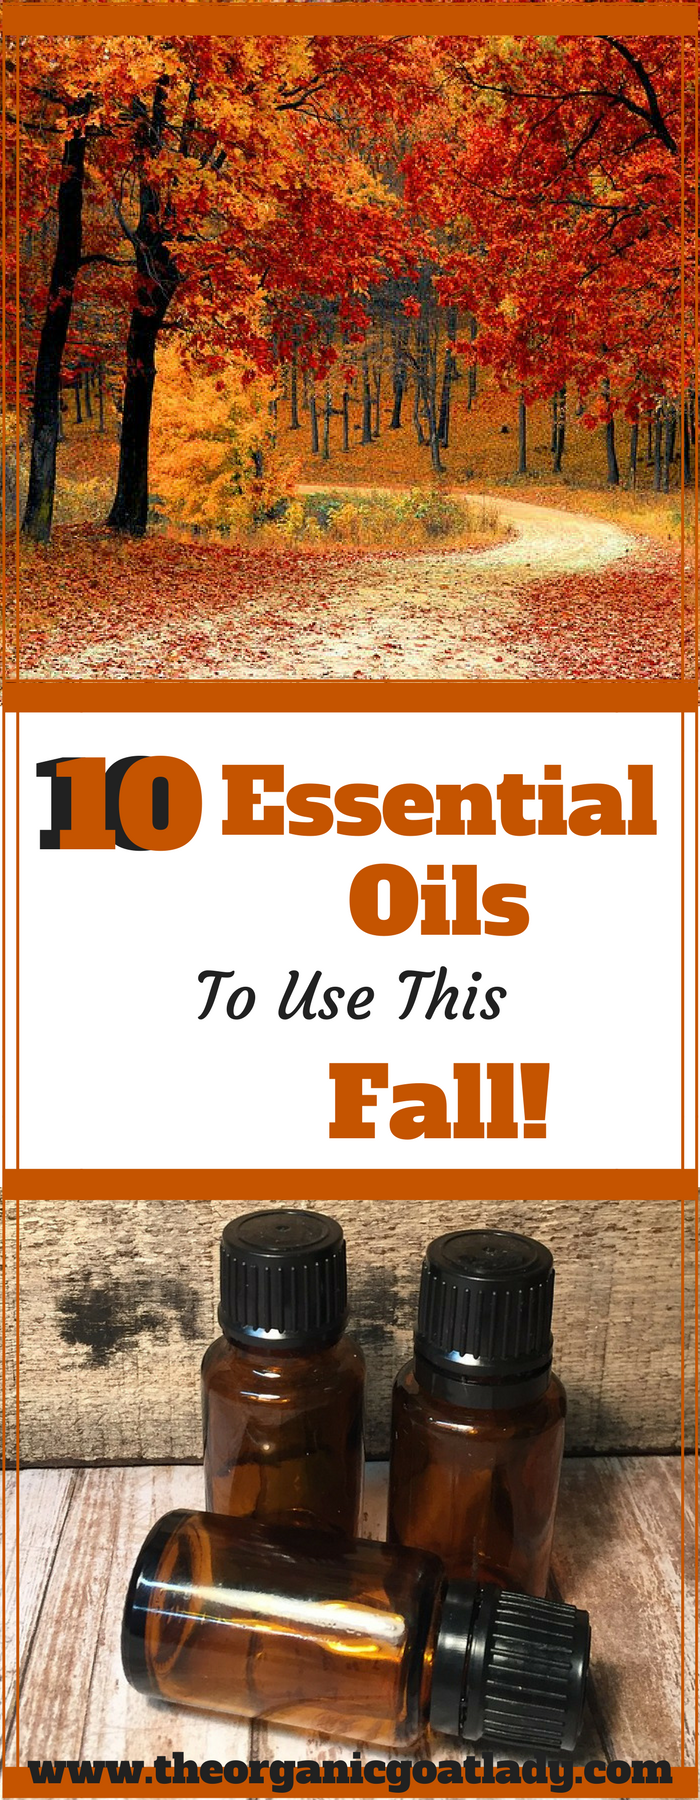 10 Essential Oils To Use This Fall!